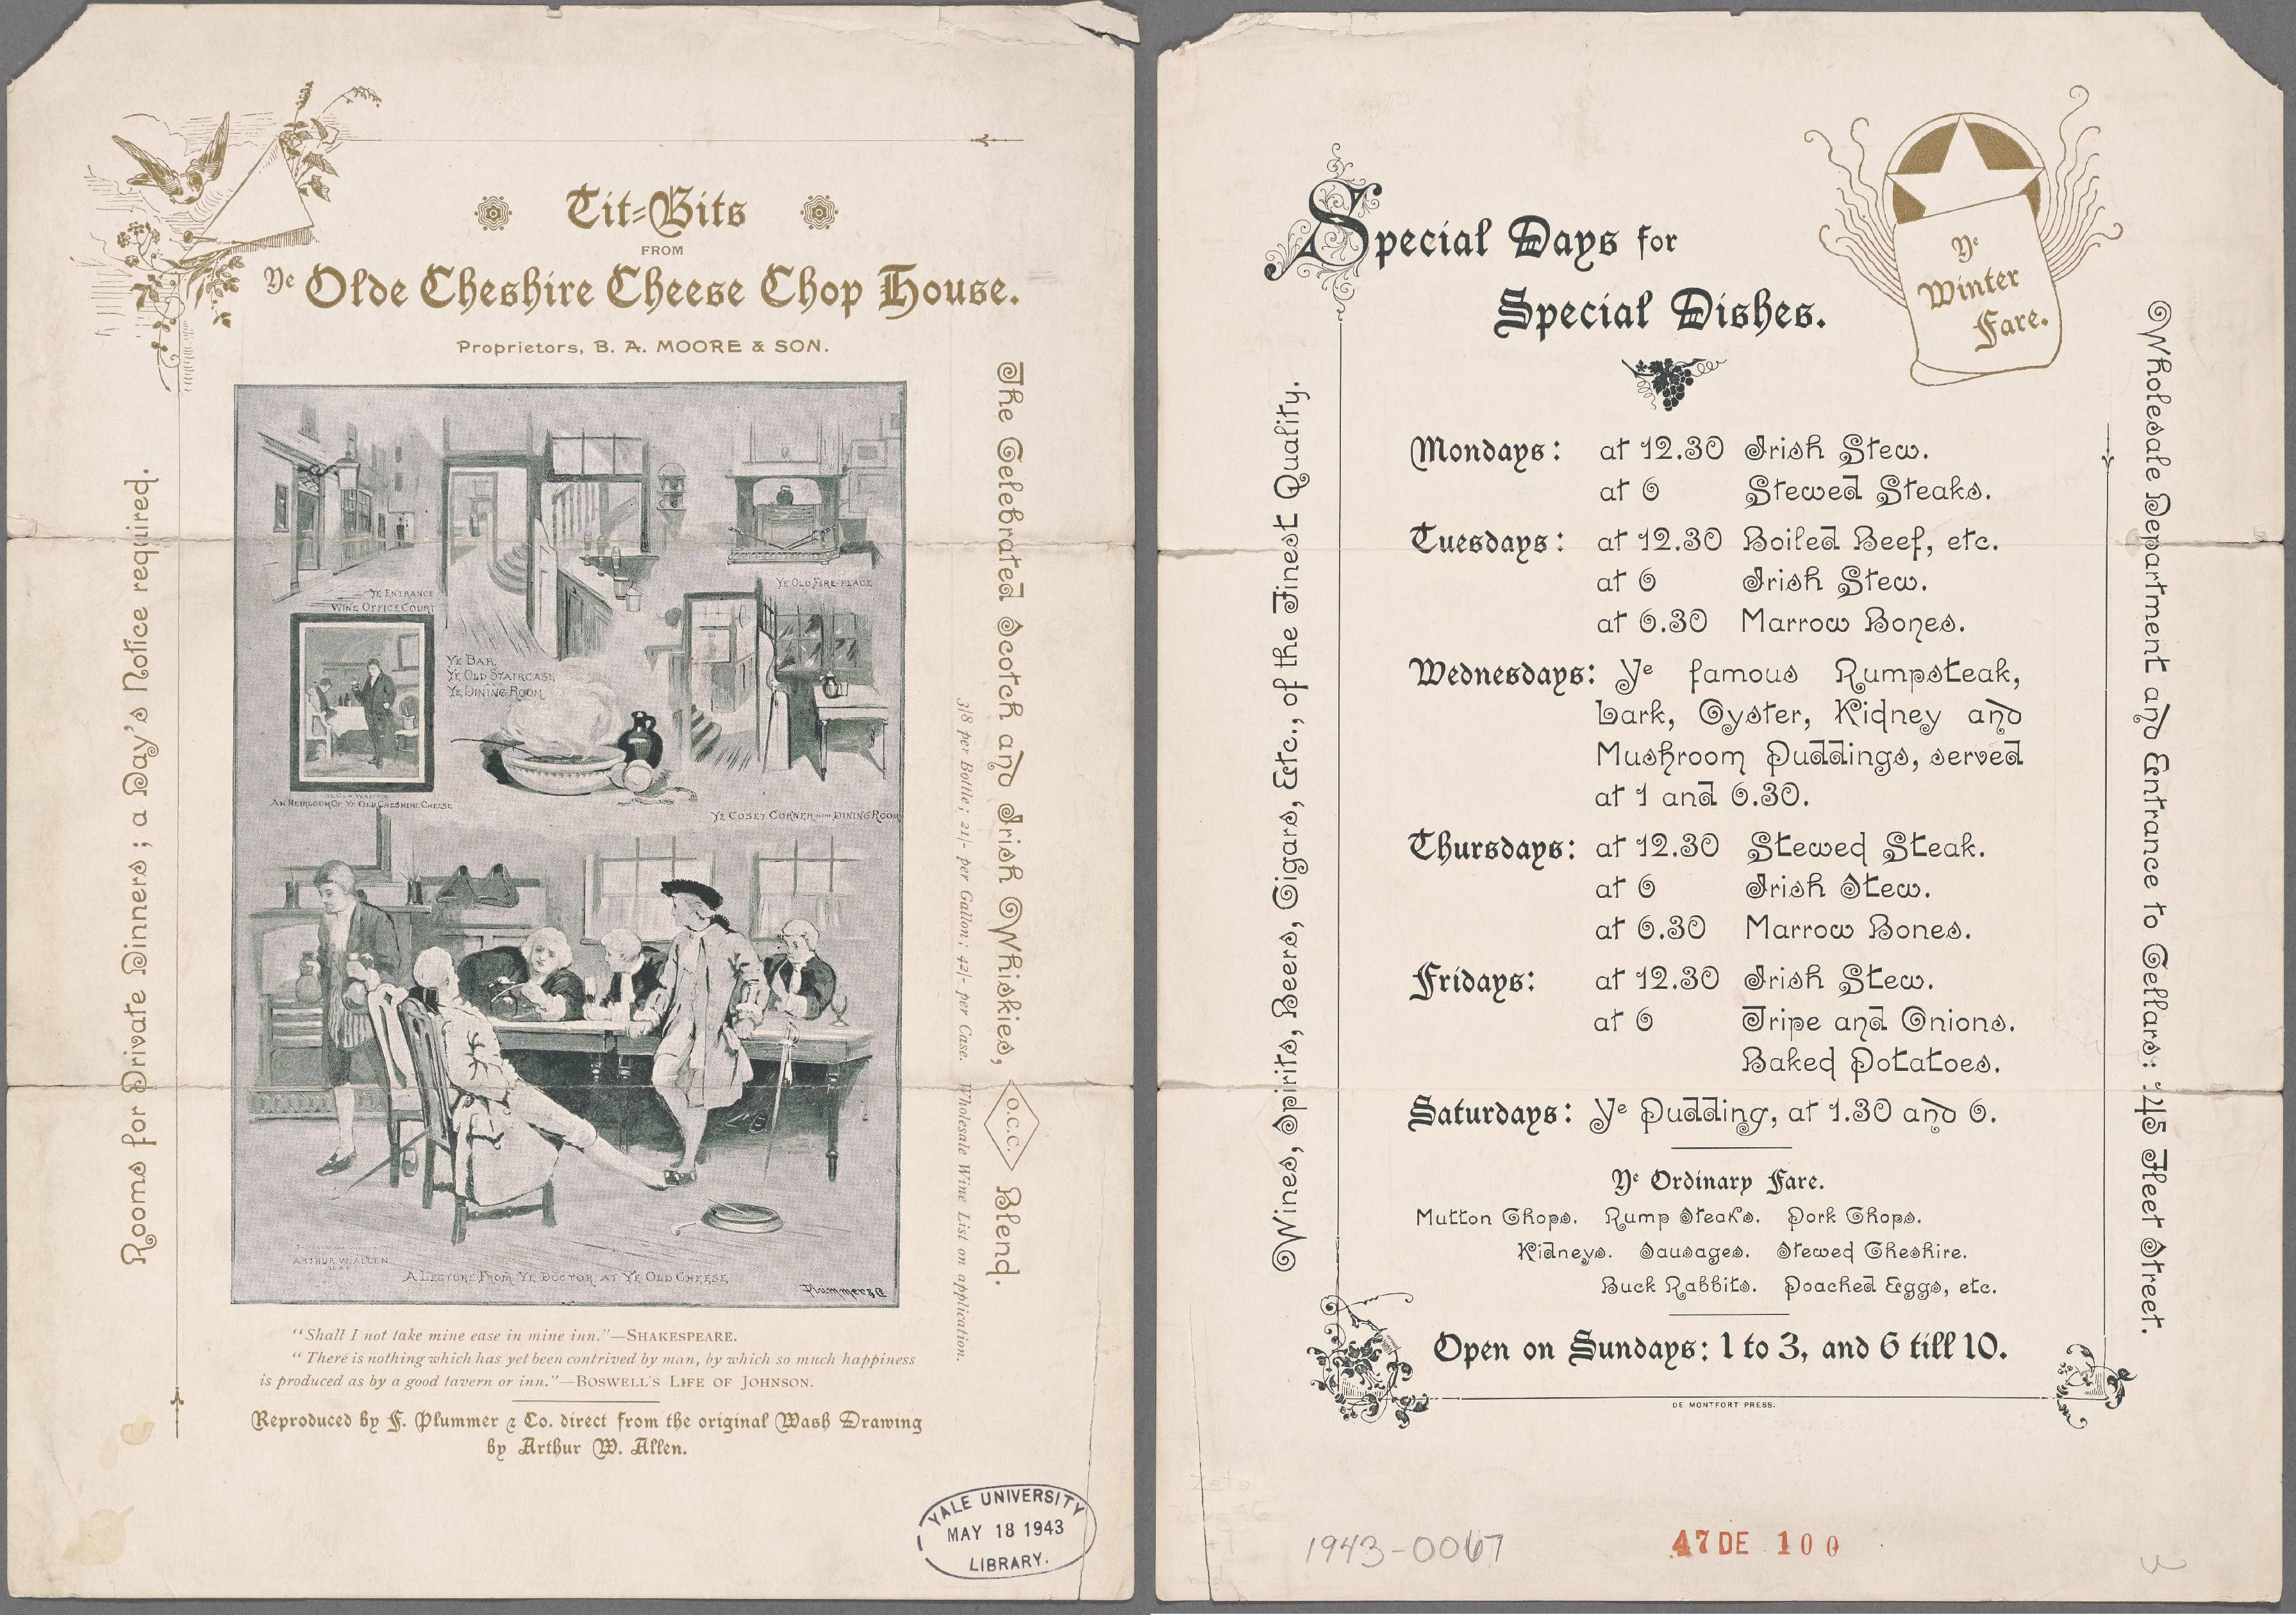 Menu from the Ye Olde Cheshire Cheese pub on Fleet Street, 1943.